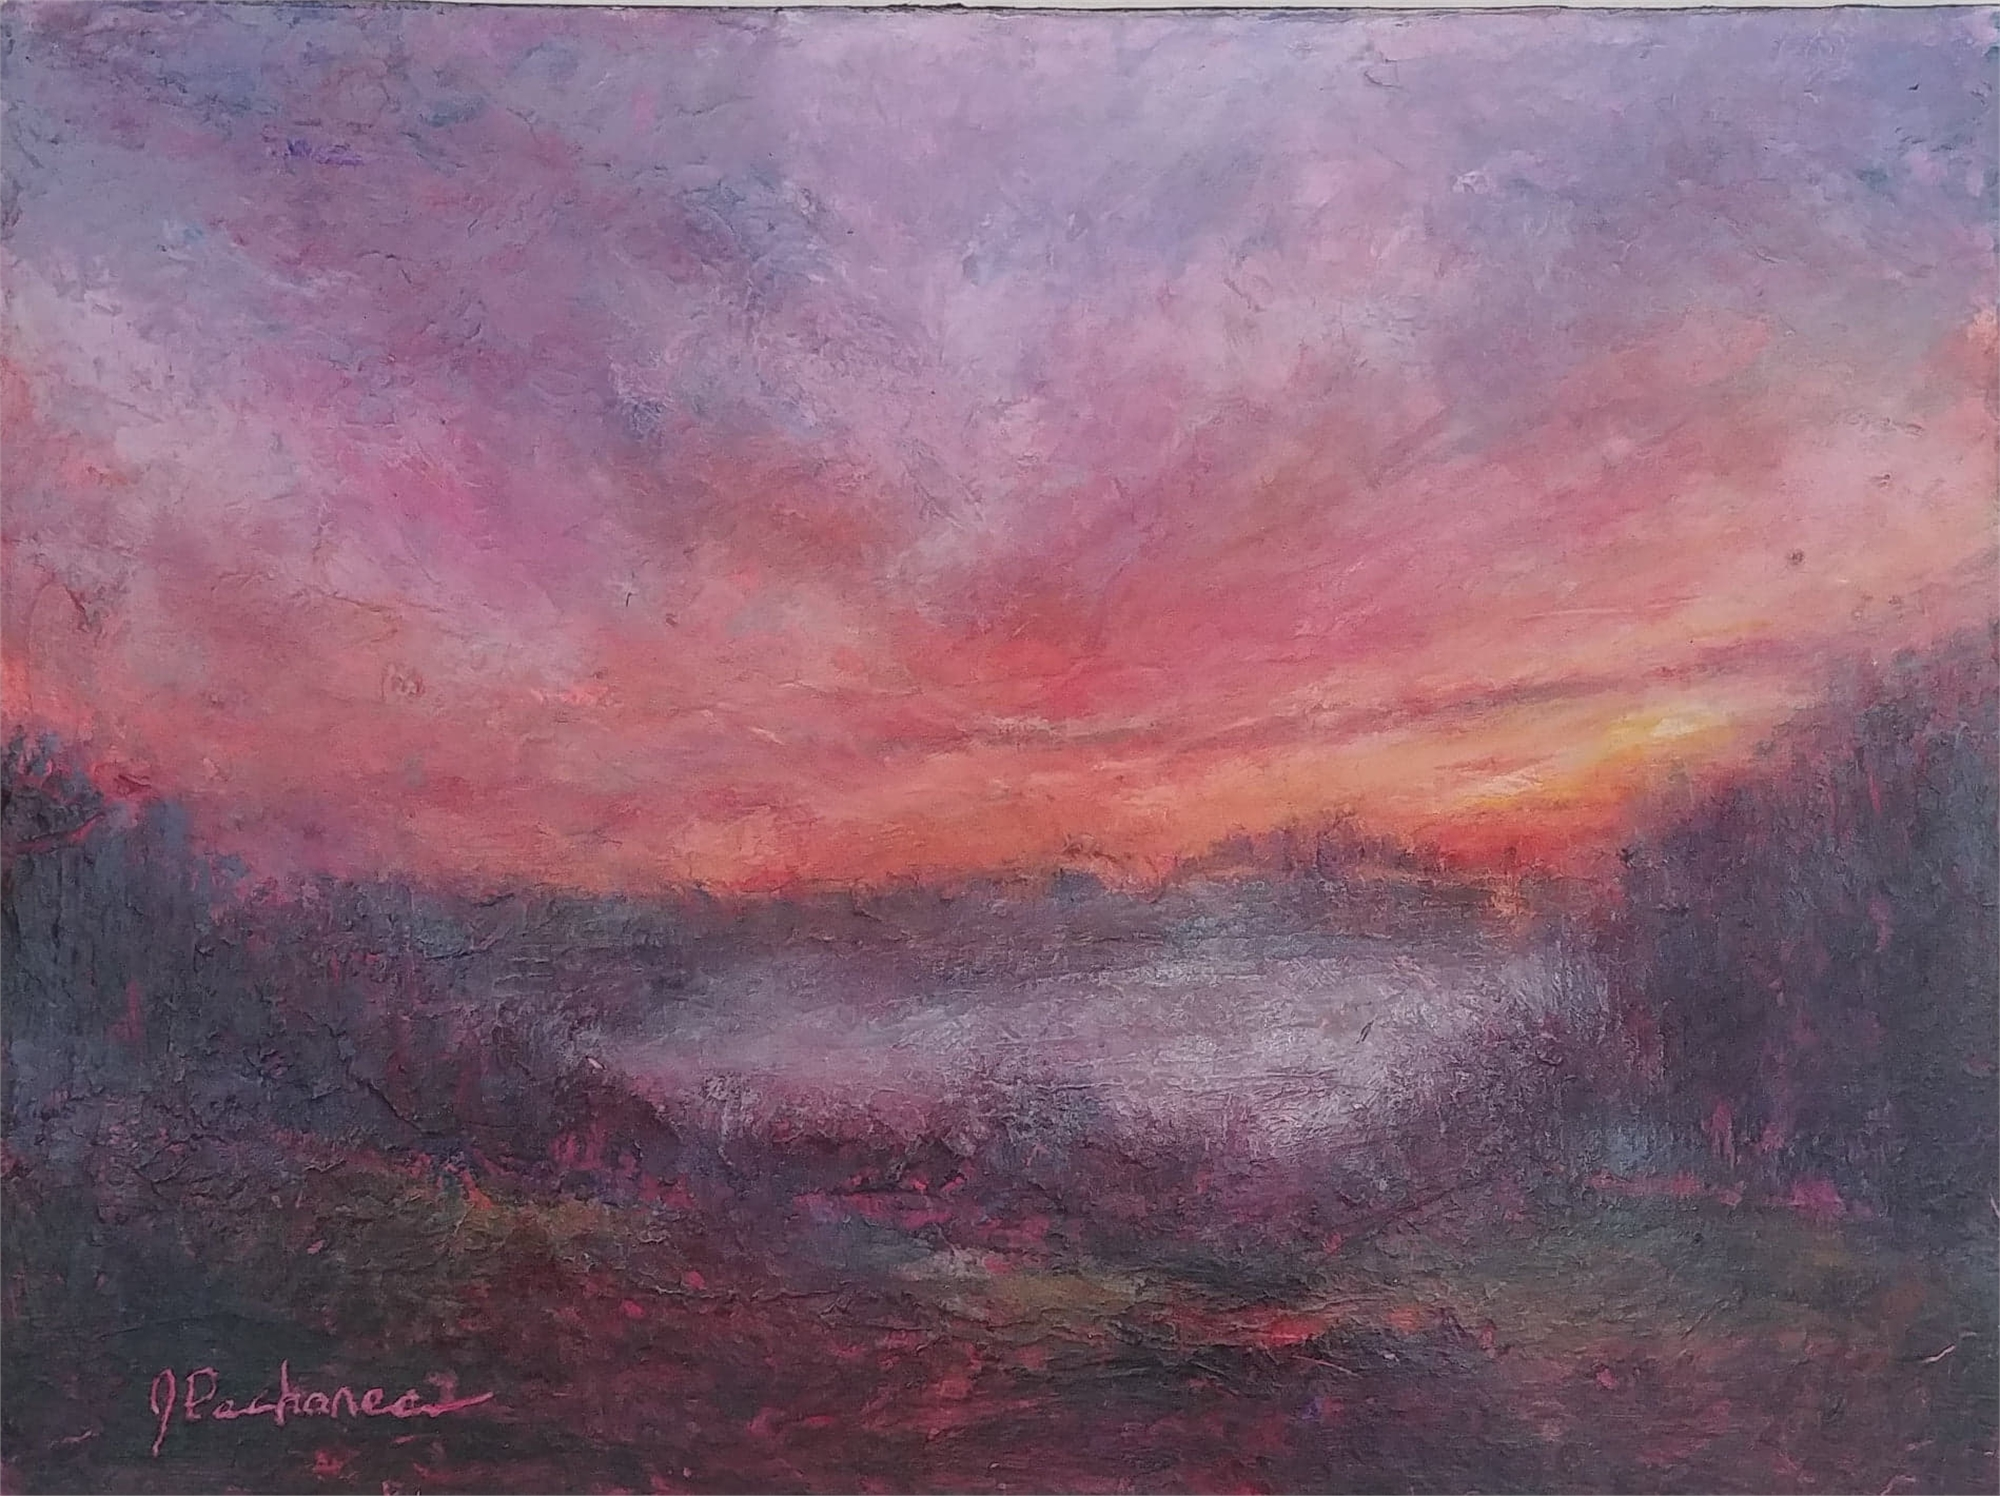 Morning Mist by Joan Pechanec (McMinnville, OR)